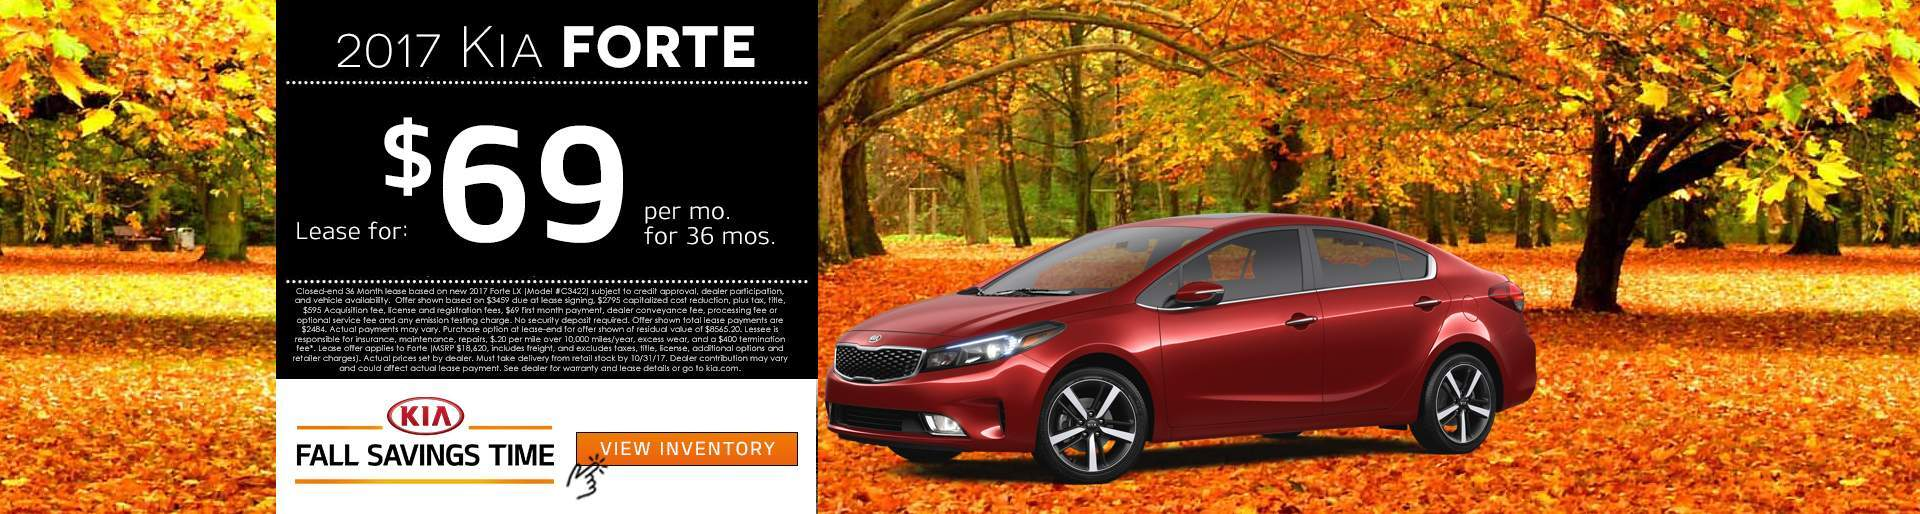 2017 Kia Forte Lease Offer